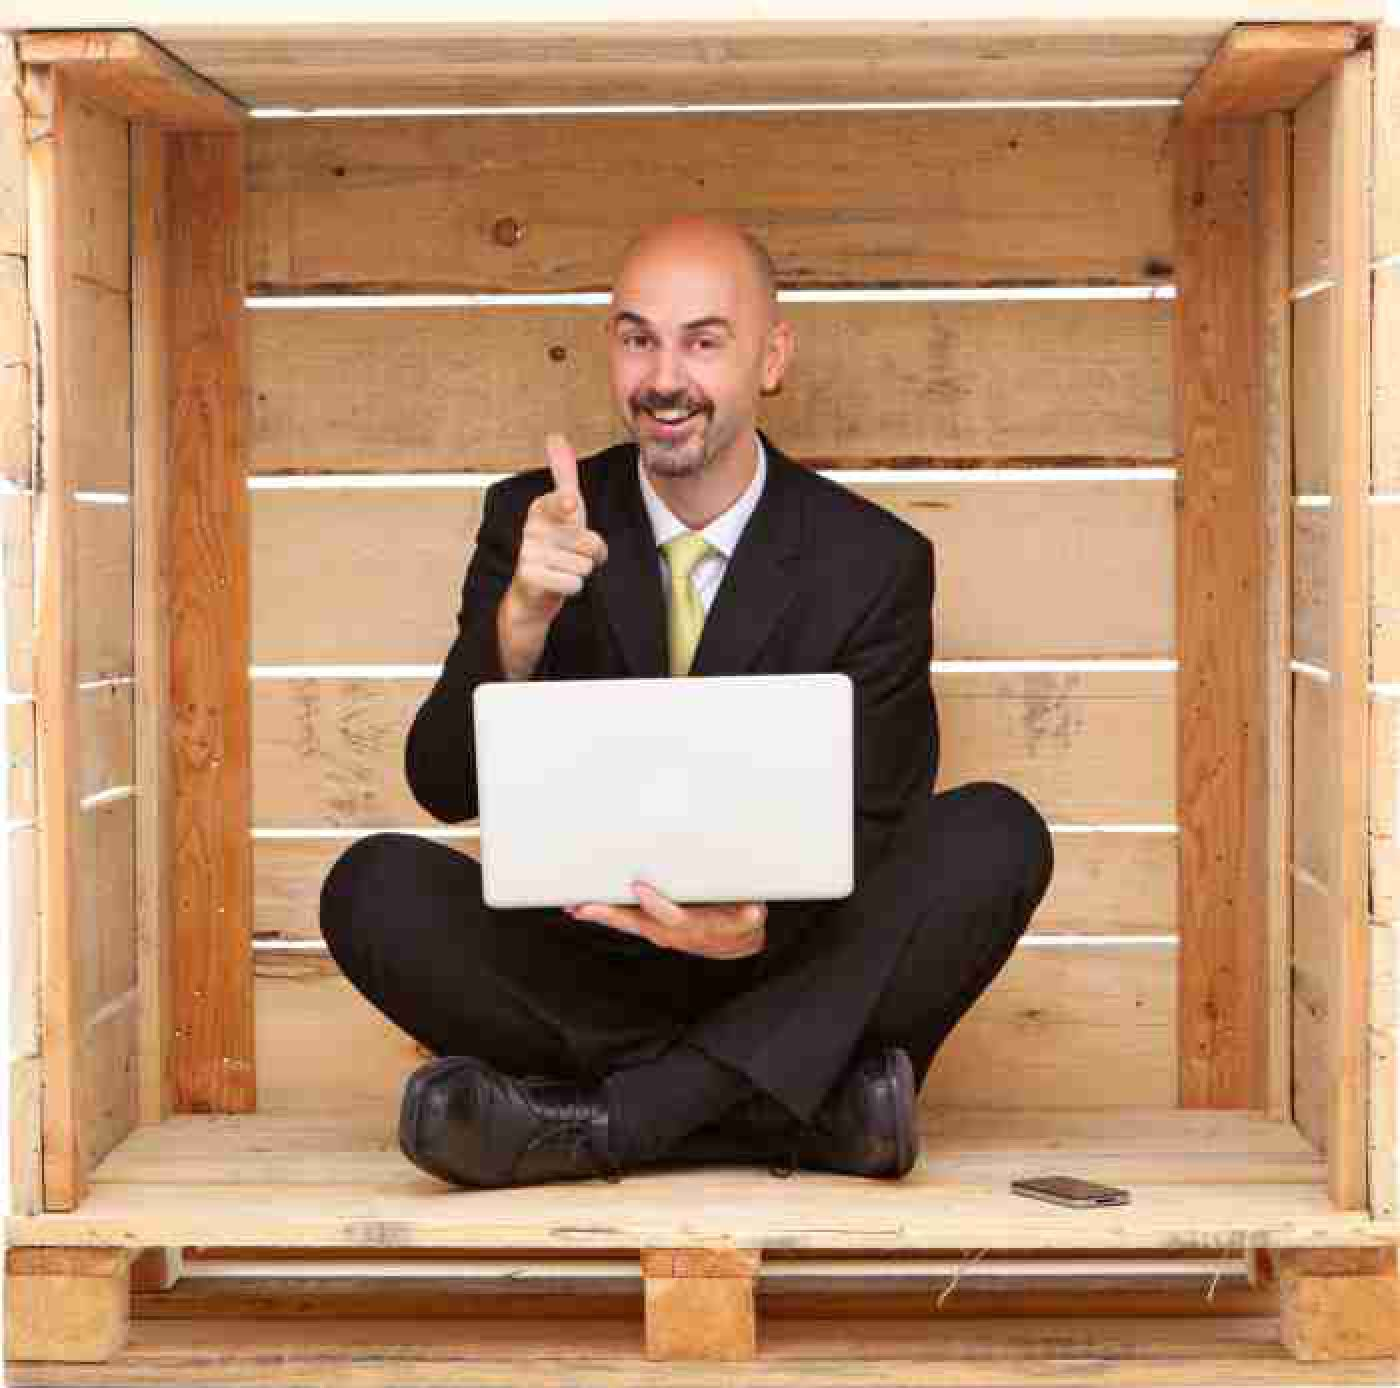 Smiling manager with laptop sitting inside wood box